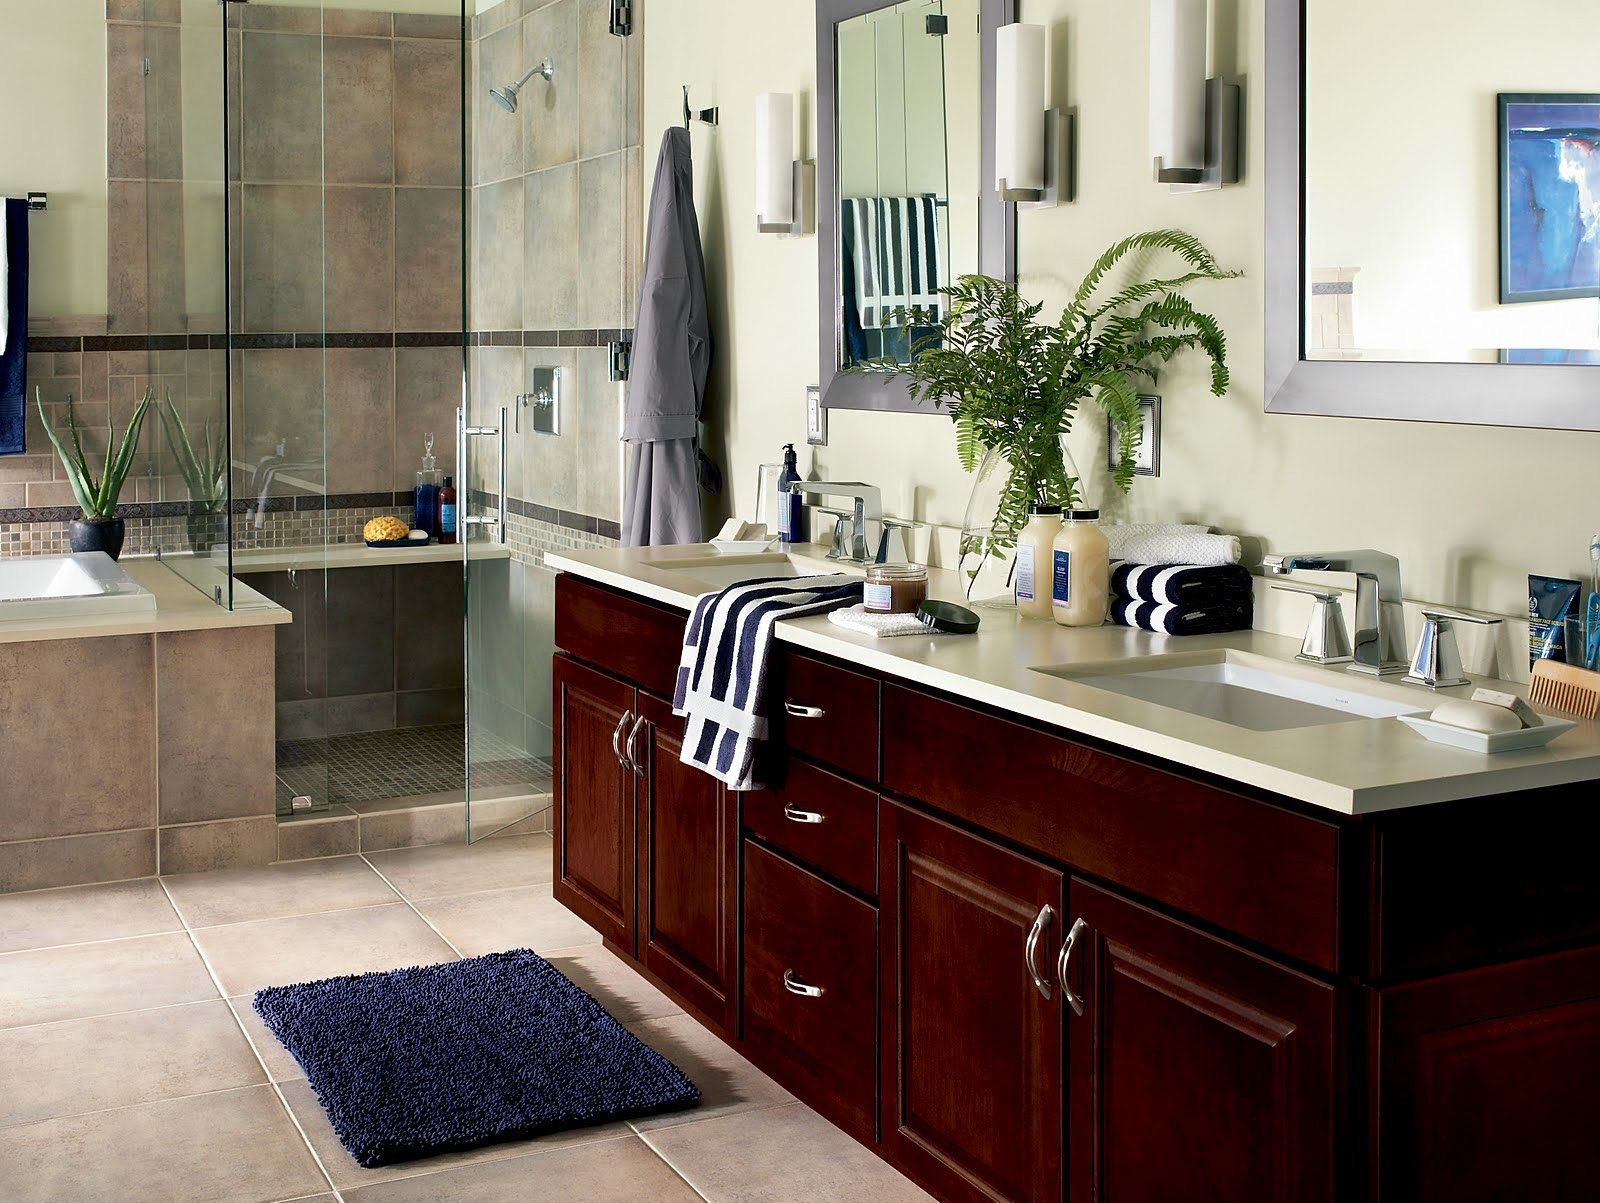 mandrbathrooms kitchen and bathroom remodeling Master Bath Remodel